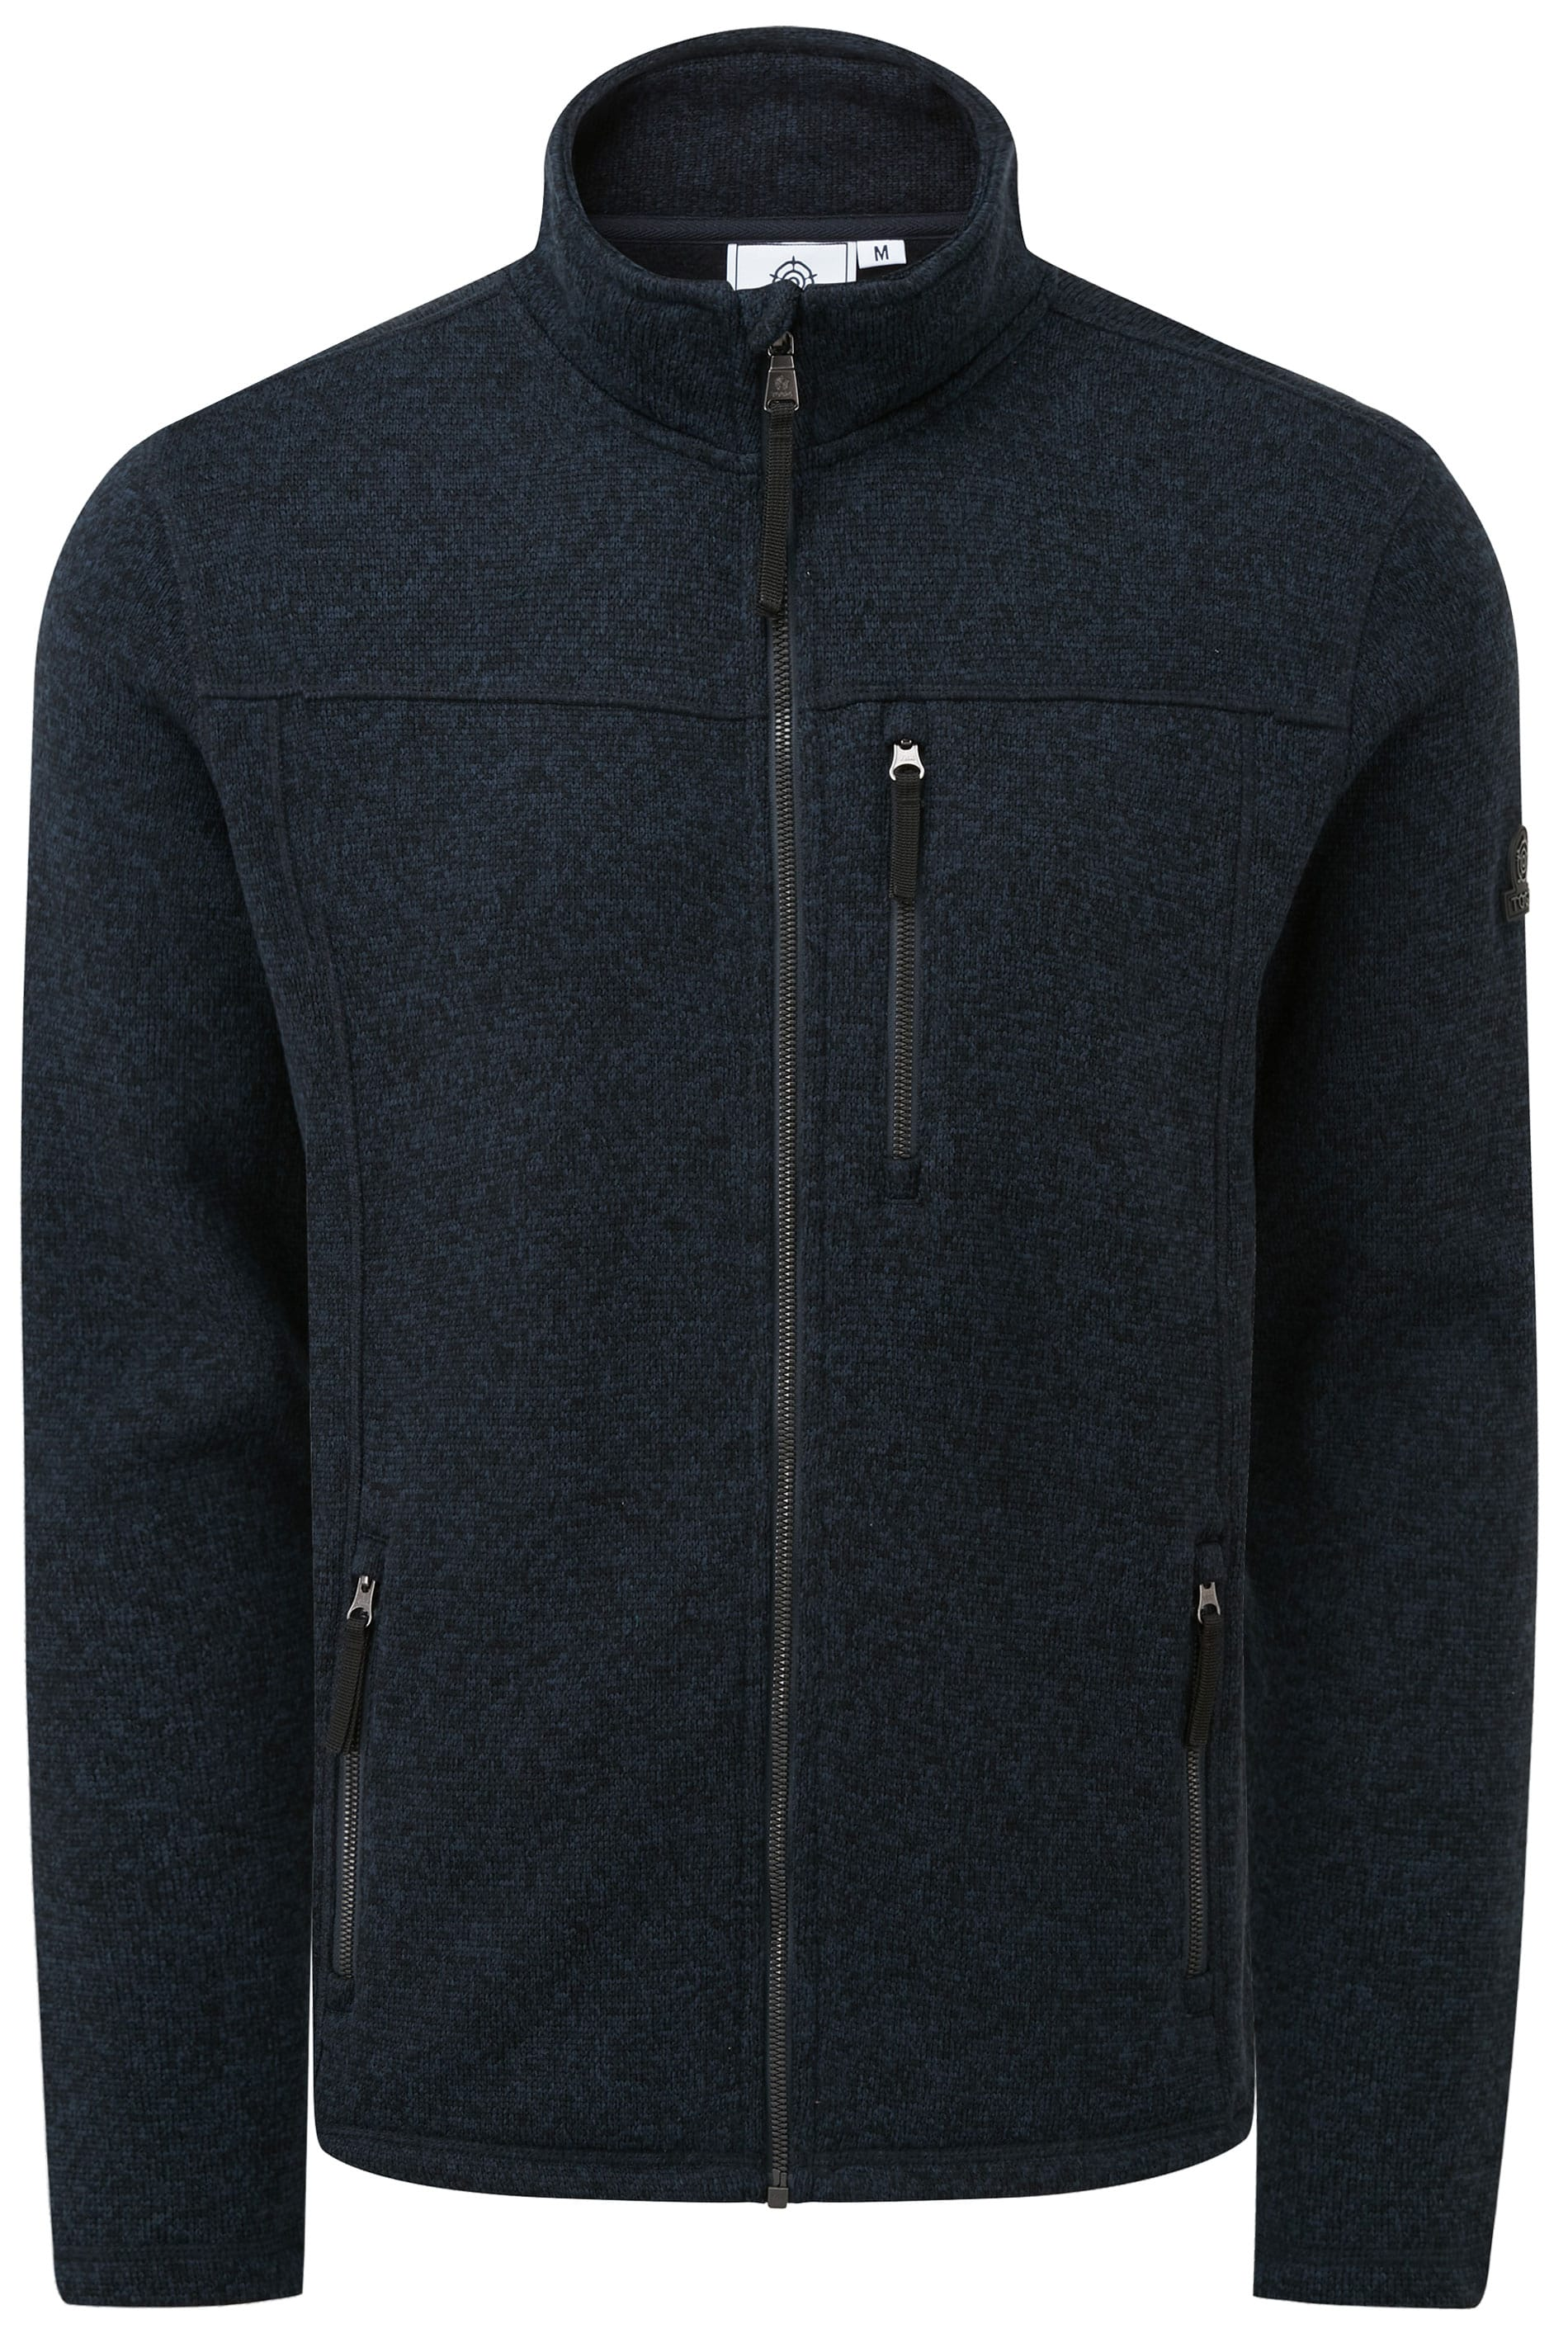 TOG24 Navy Zip Through Funnel Neck Fleece